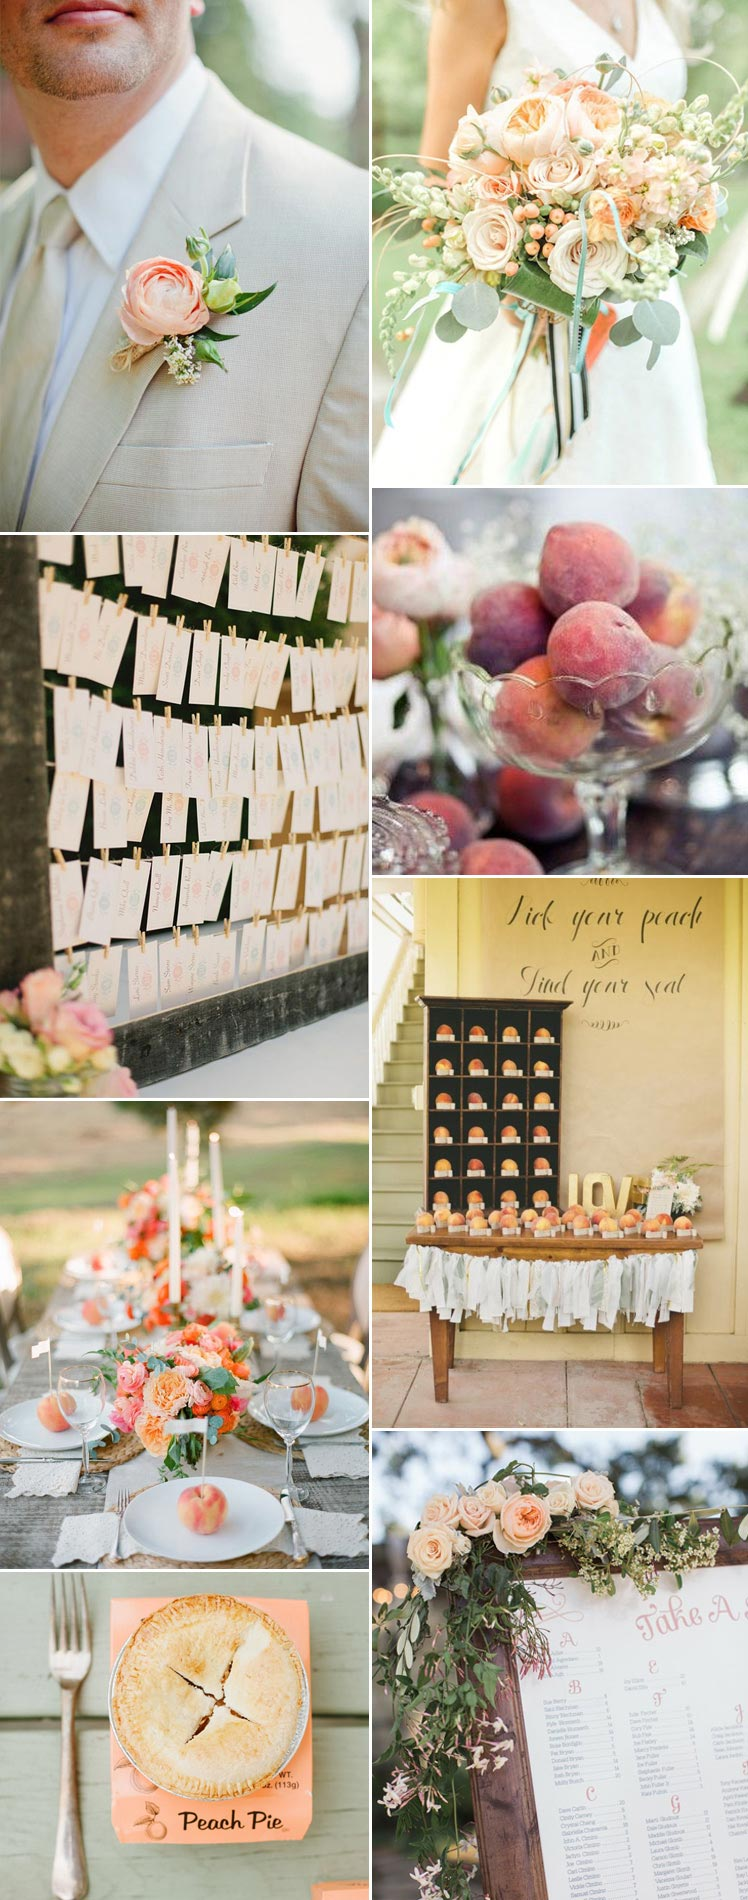 Inspiration for a peaches and cream wedding